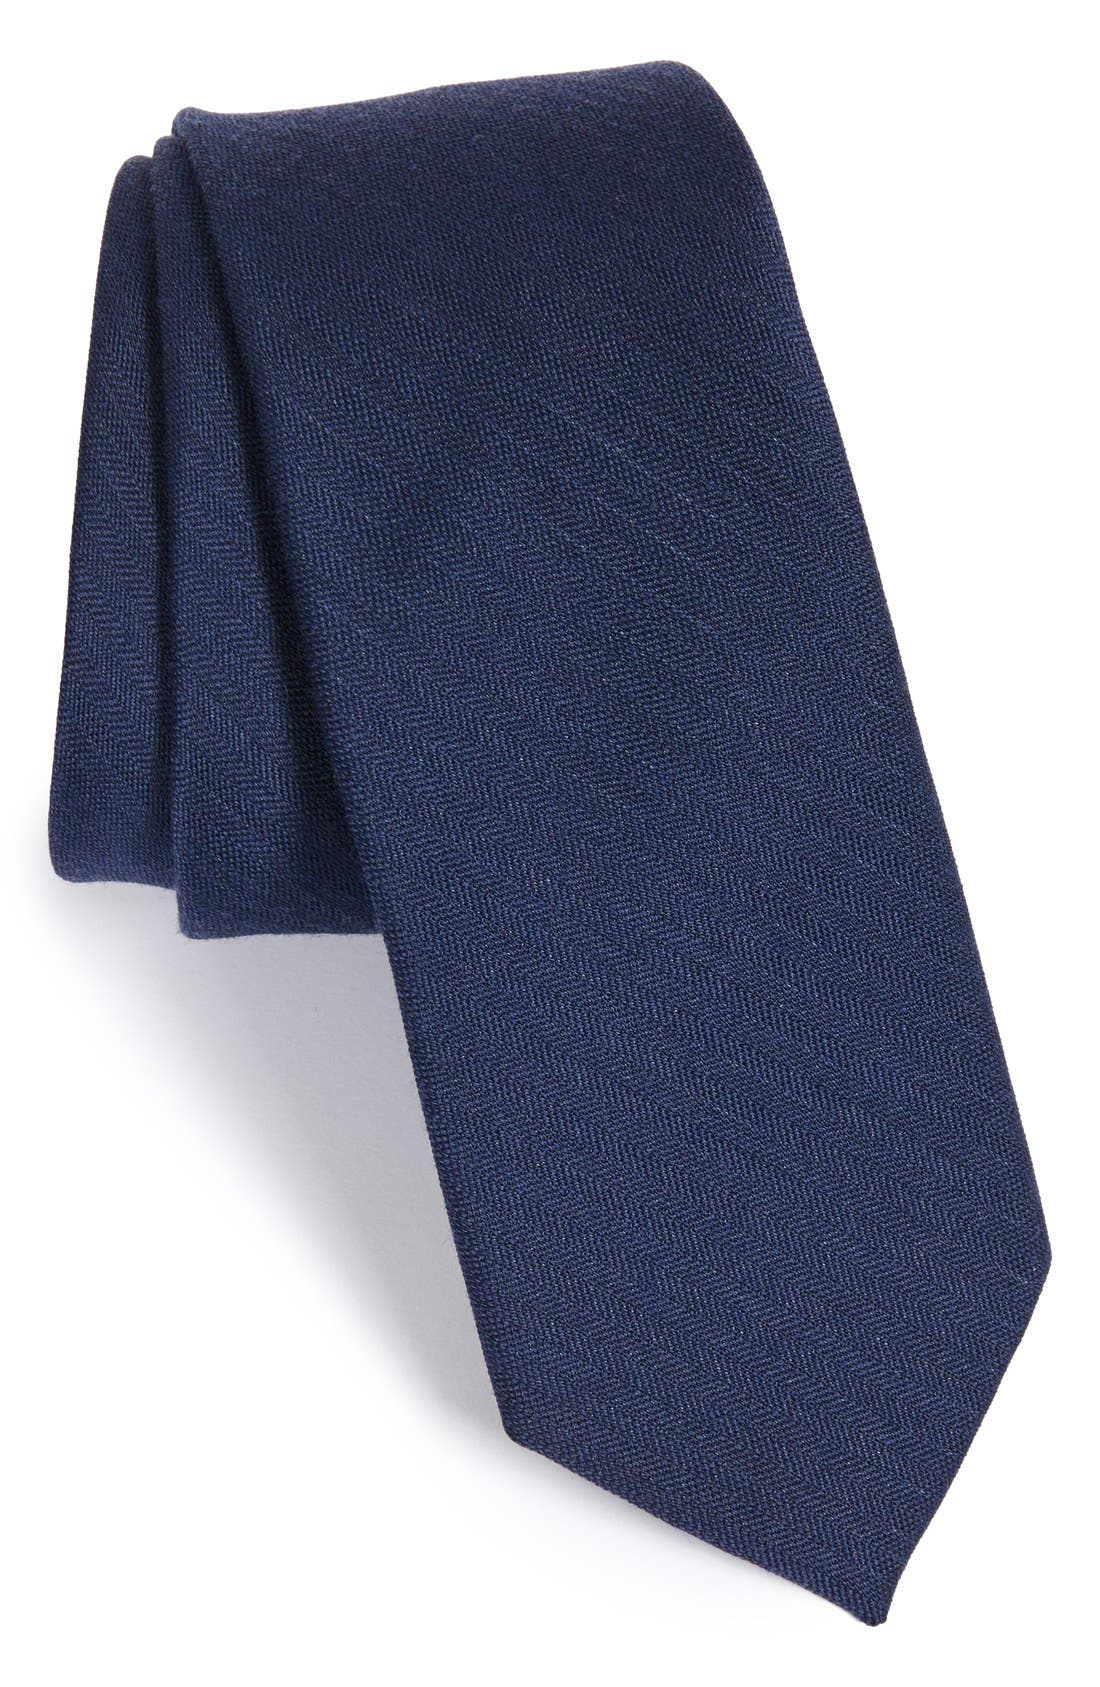 Main Image - The Tie Bar Solid Wool & Silk Tie